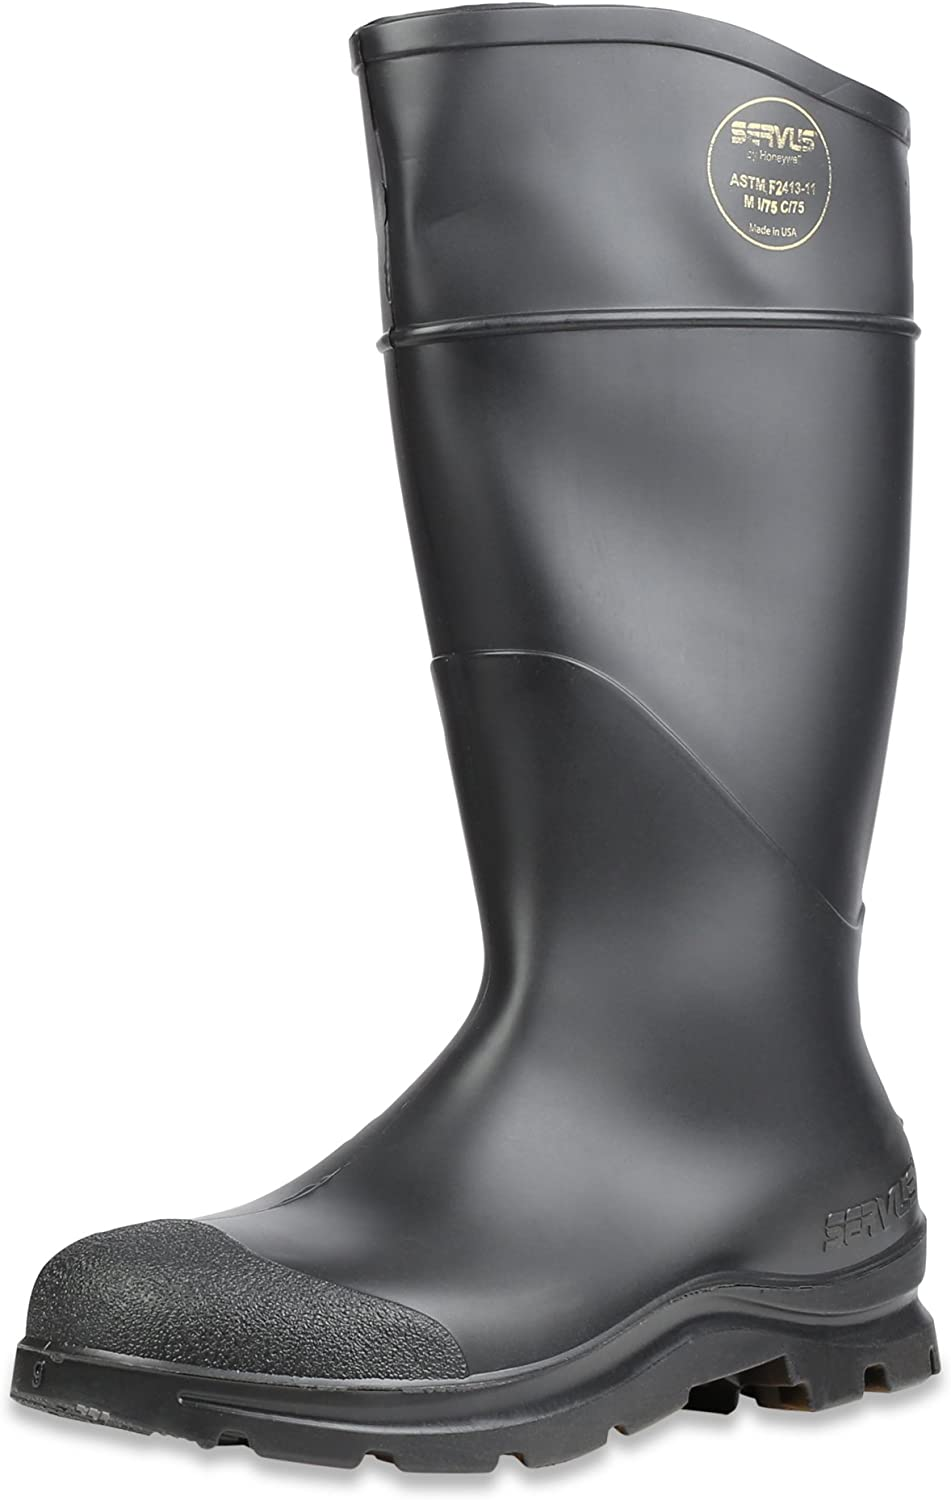 Top 10 Food Processing Boots